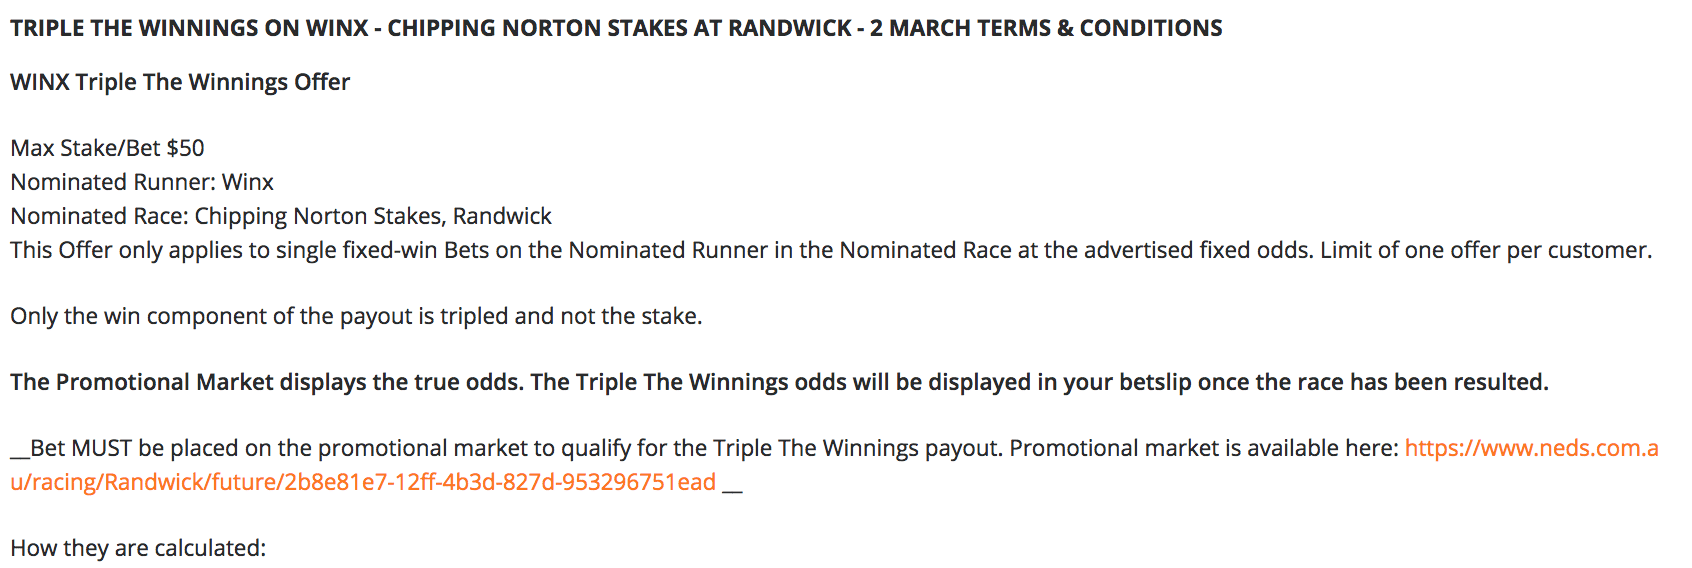 Neds offers triple odds for Winx fixed odds punters at